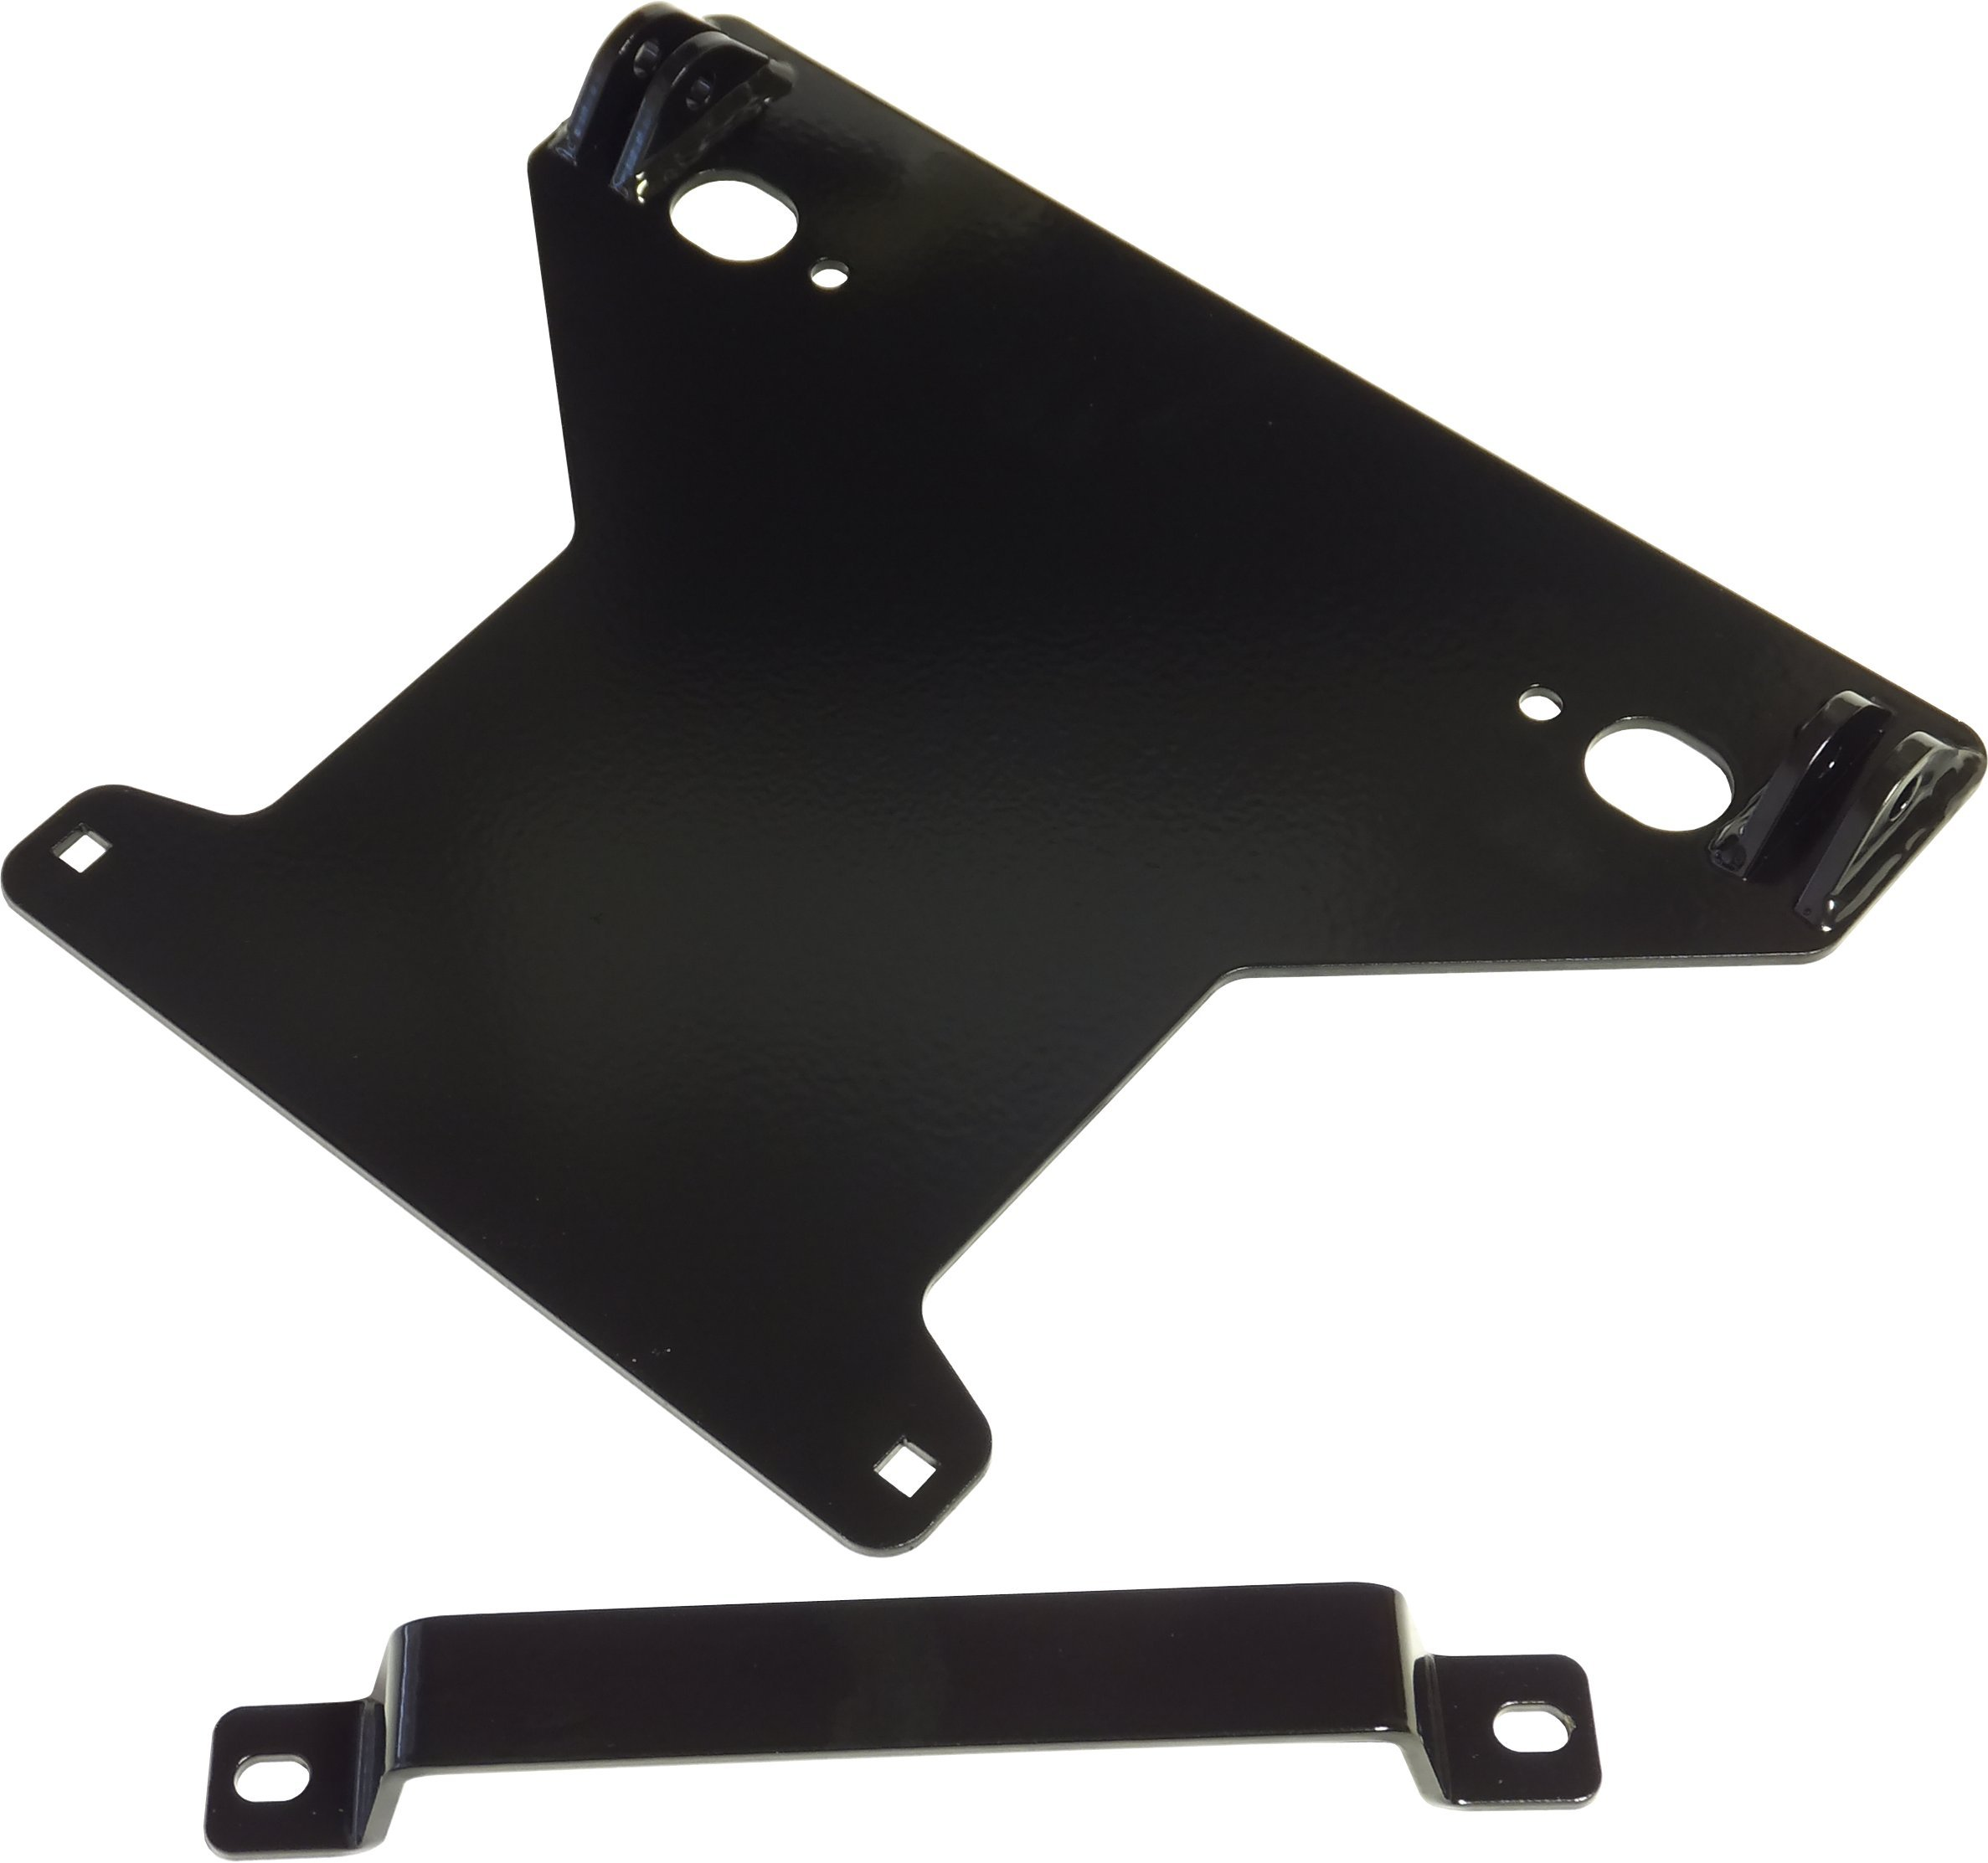 KFI Products (105445 Plow Mount